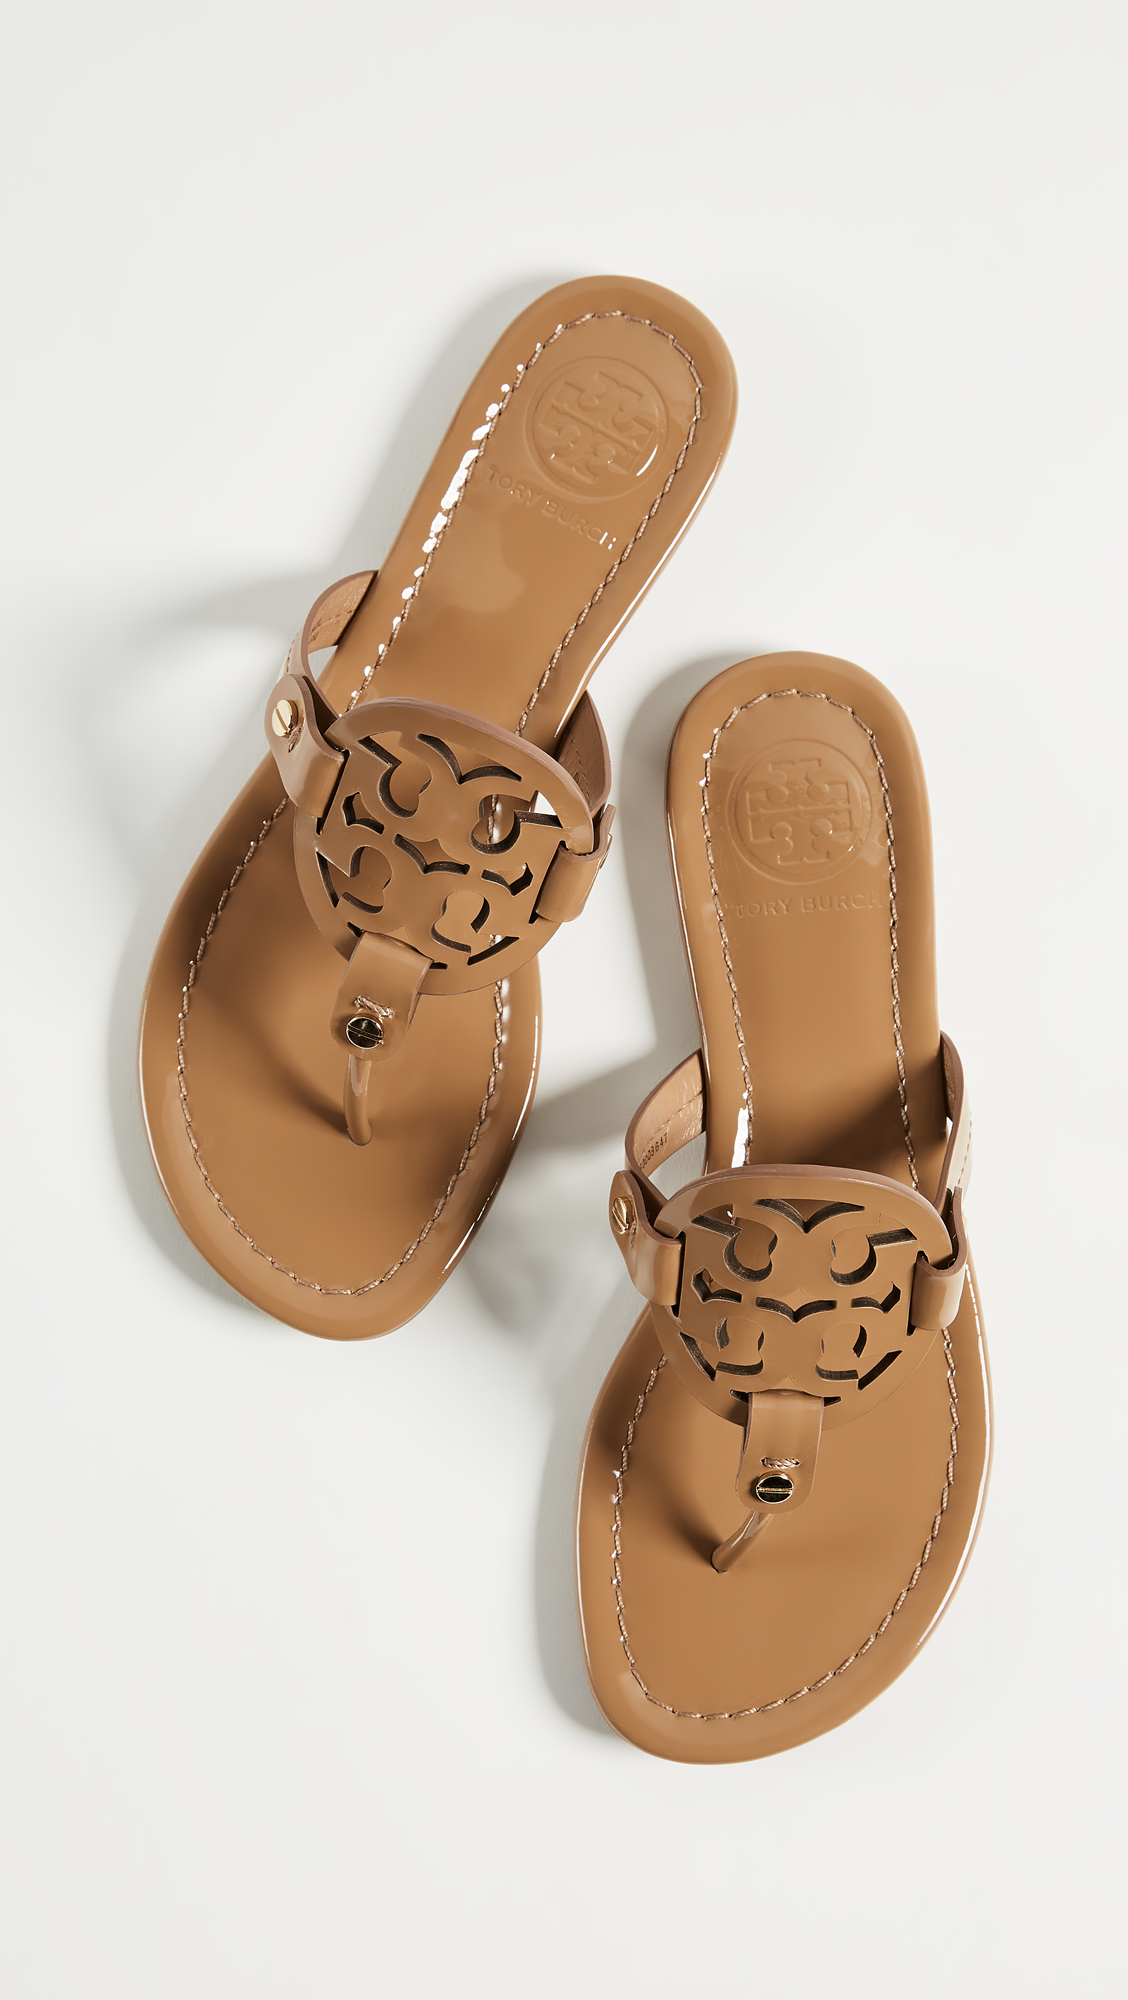 396aba6910f Tory Burch Miller Thong Sandals